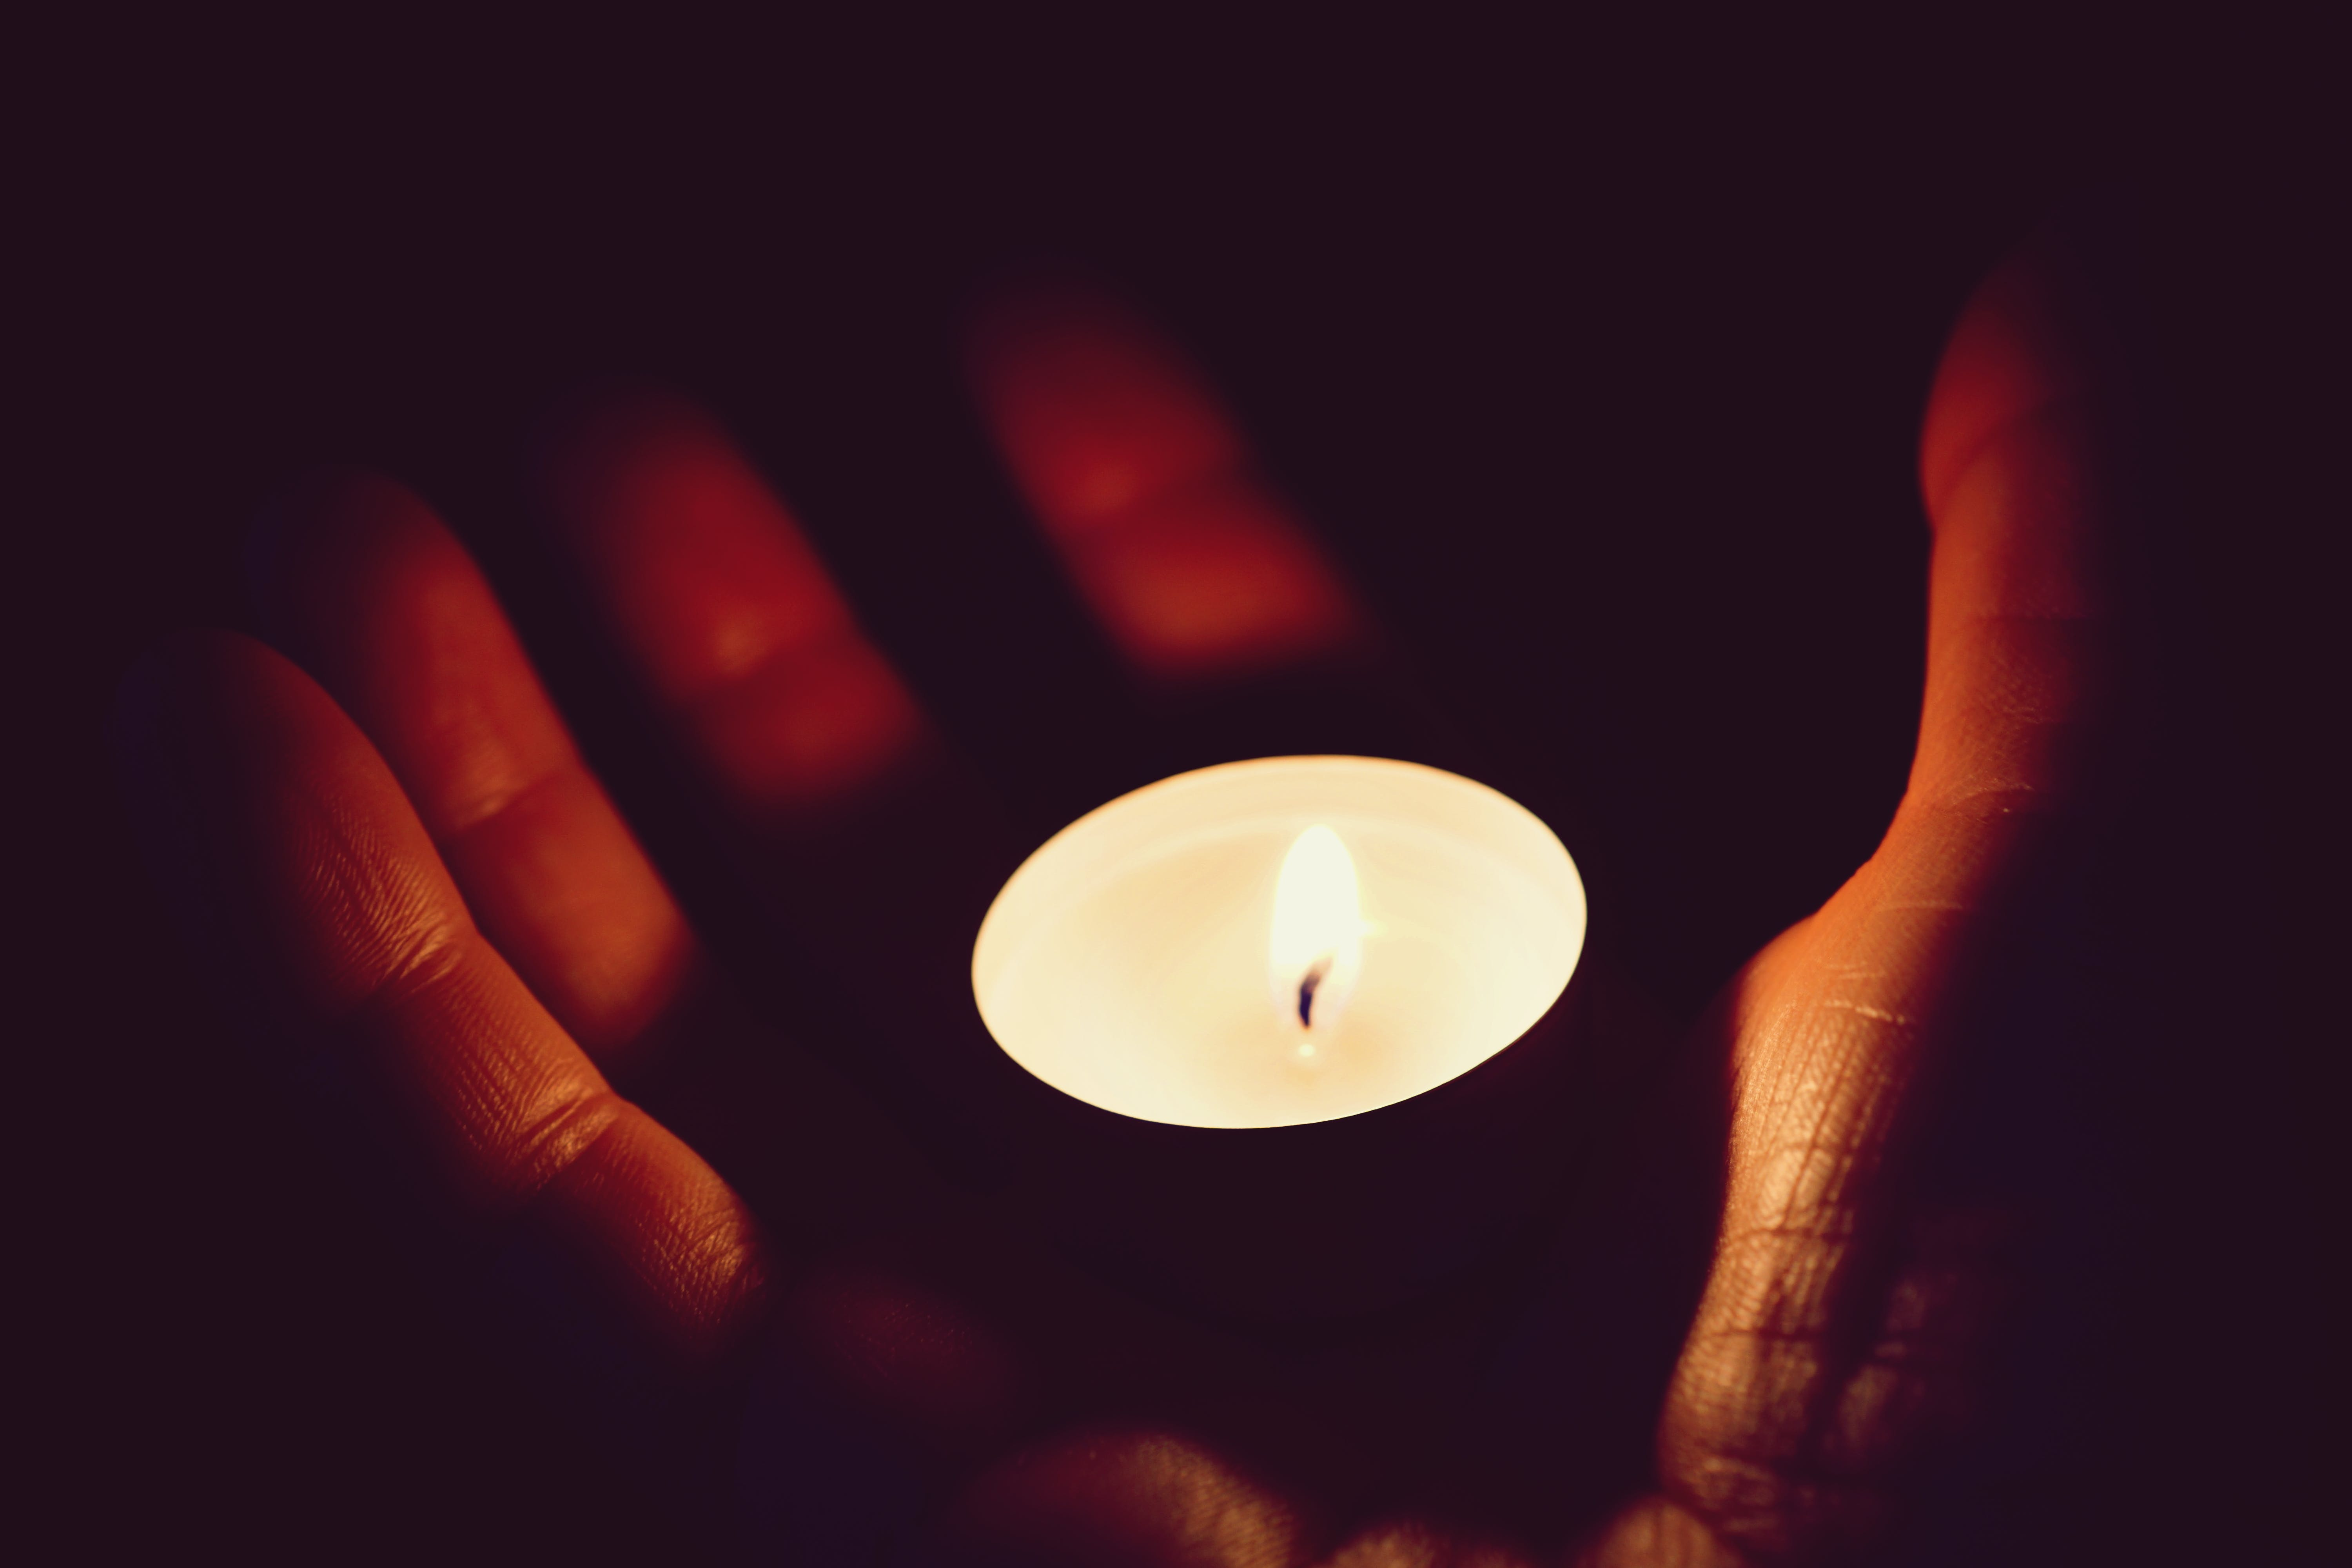 Lighted Tealight on Person Palm